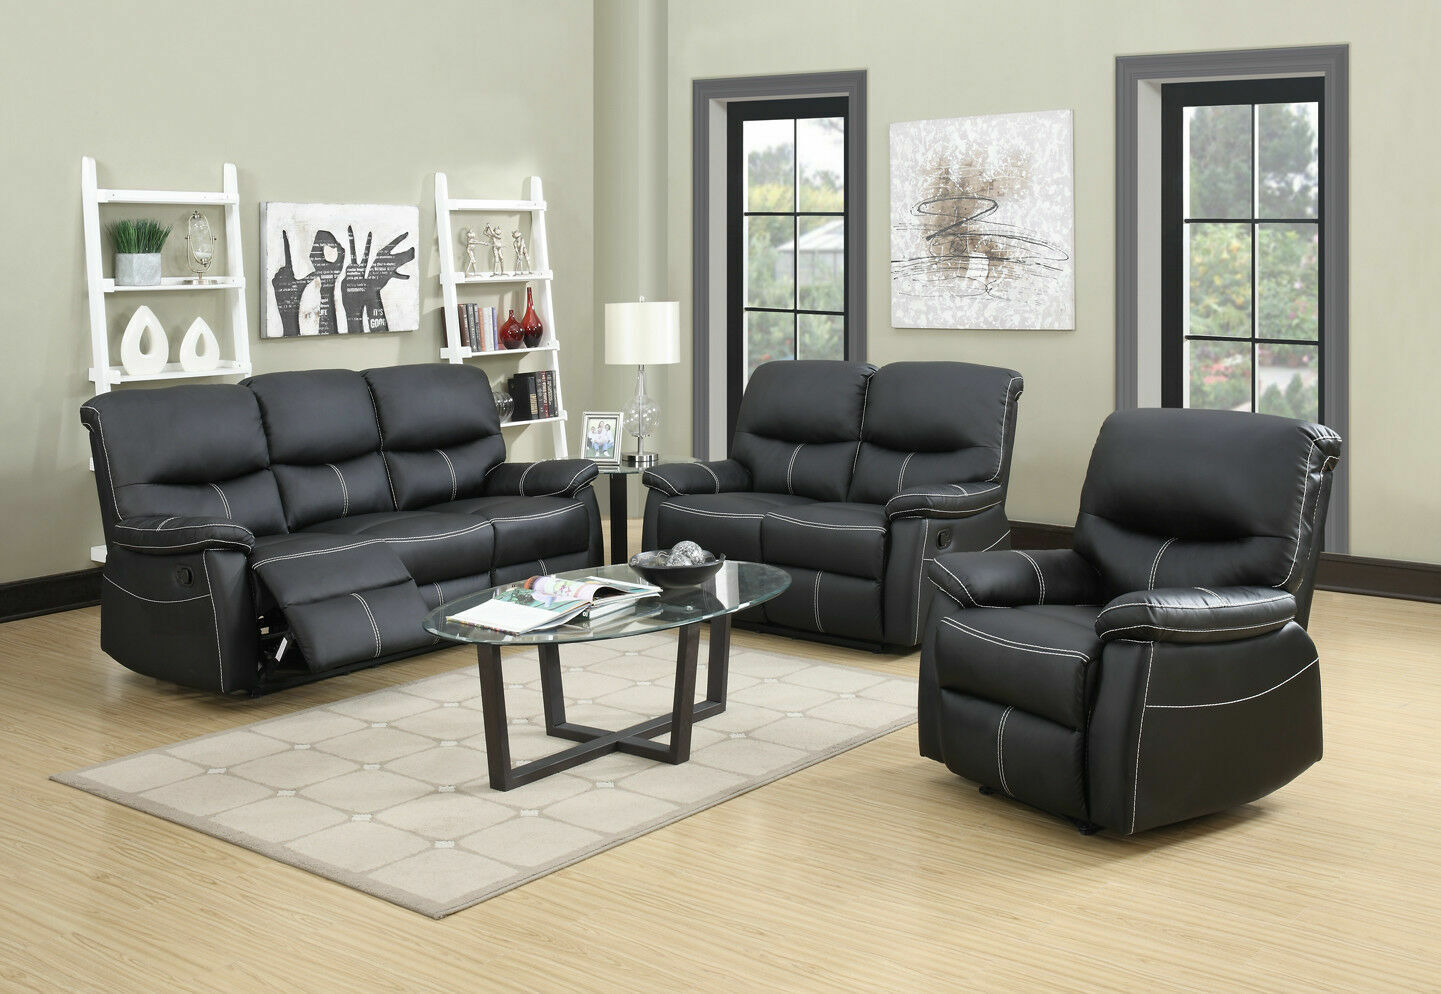 New Loveseat Chaise Couch Recliner Sofa Chair Leather Accent Chair PR Furniture